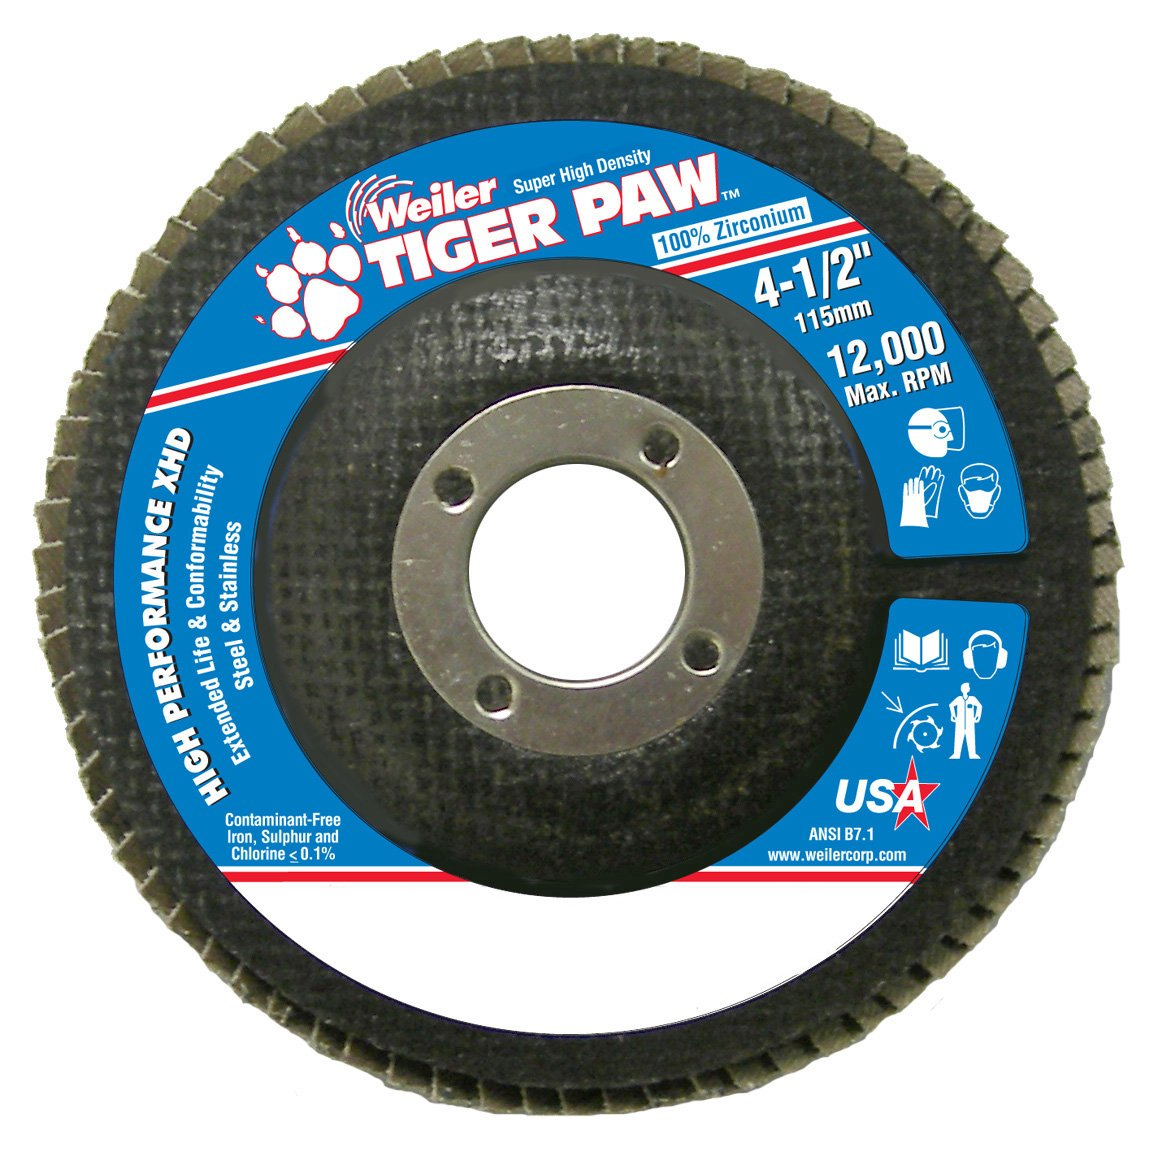 Weiler 51160 Tiger Paw XHD Super High Density Abrasive Flap Disc, Type 27 Flat Style, Phenolic Backing, Zirconia Alumina, 4-1/2'' Diameter, 7/8'' Arbor, 36 Grit, 12000 RPM (Pack of 10)